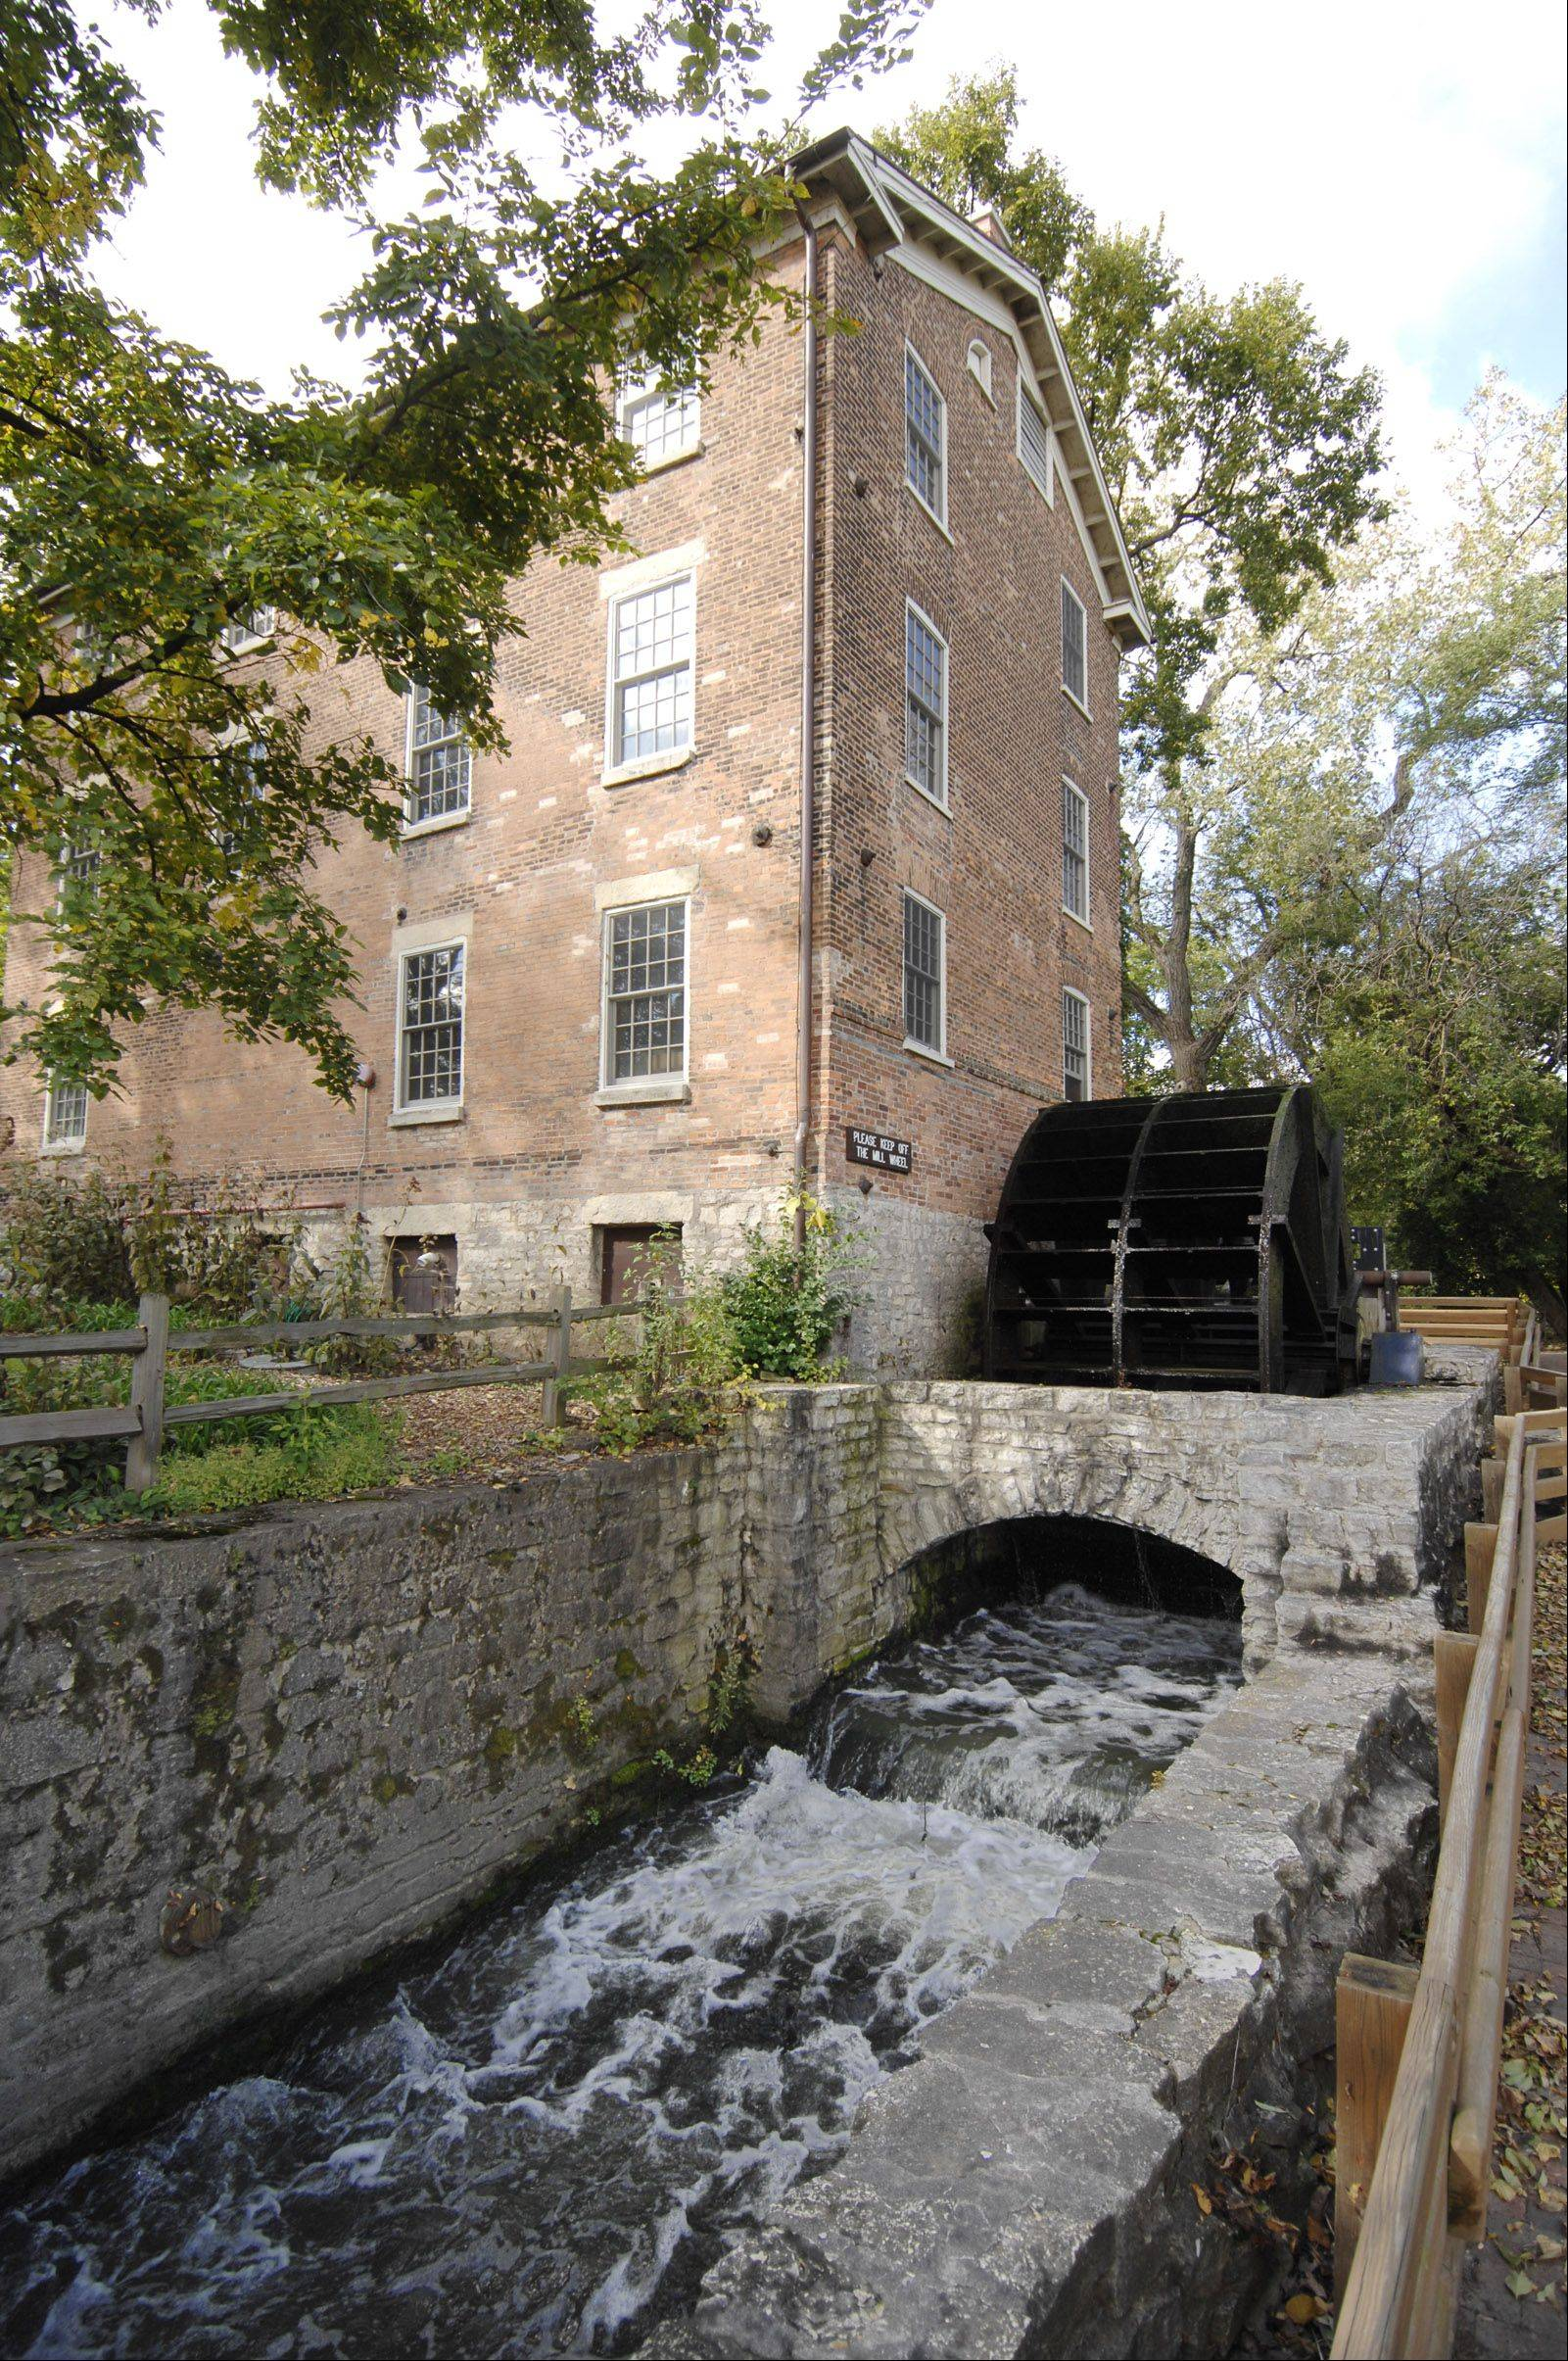 Graue Mill in Oak Brook will need several thousands of dollars in structural repairs before the grist mill will resume grinding corn. DuPage County Forest Preserve commissioners are expected to review repair proposals by year's end.